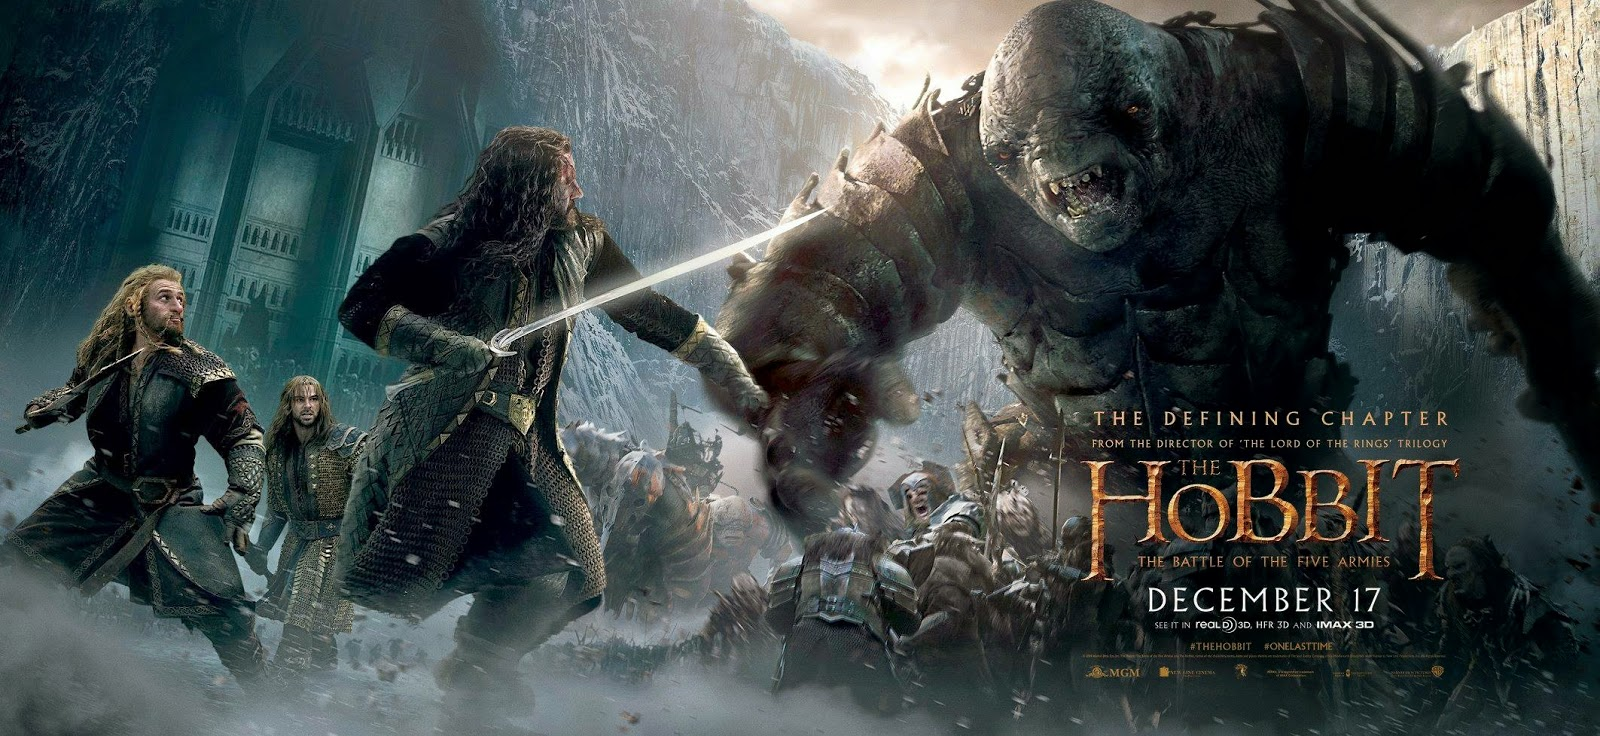 The hobbit: the battle of five arms